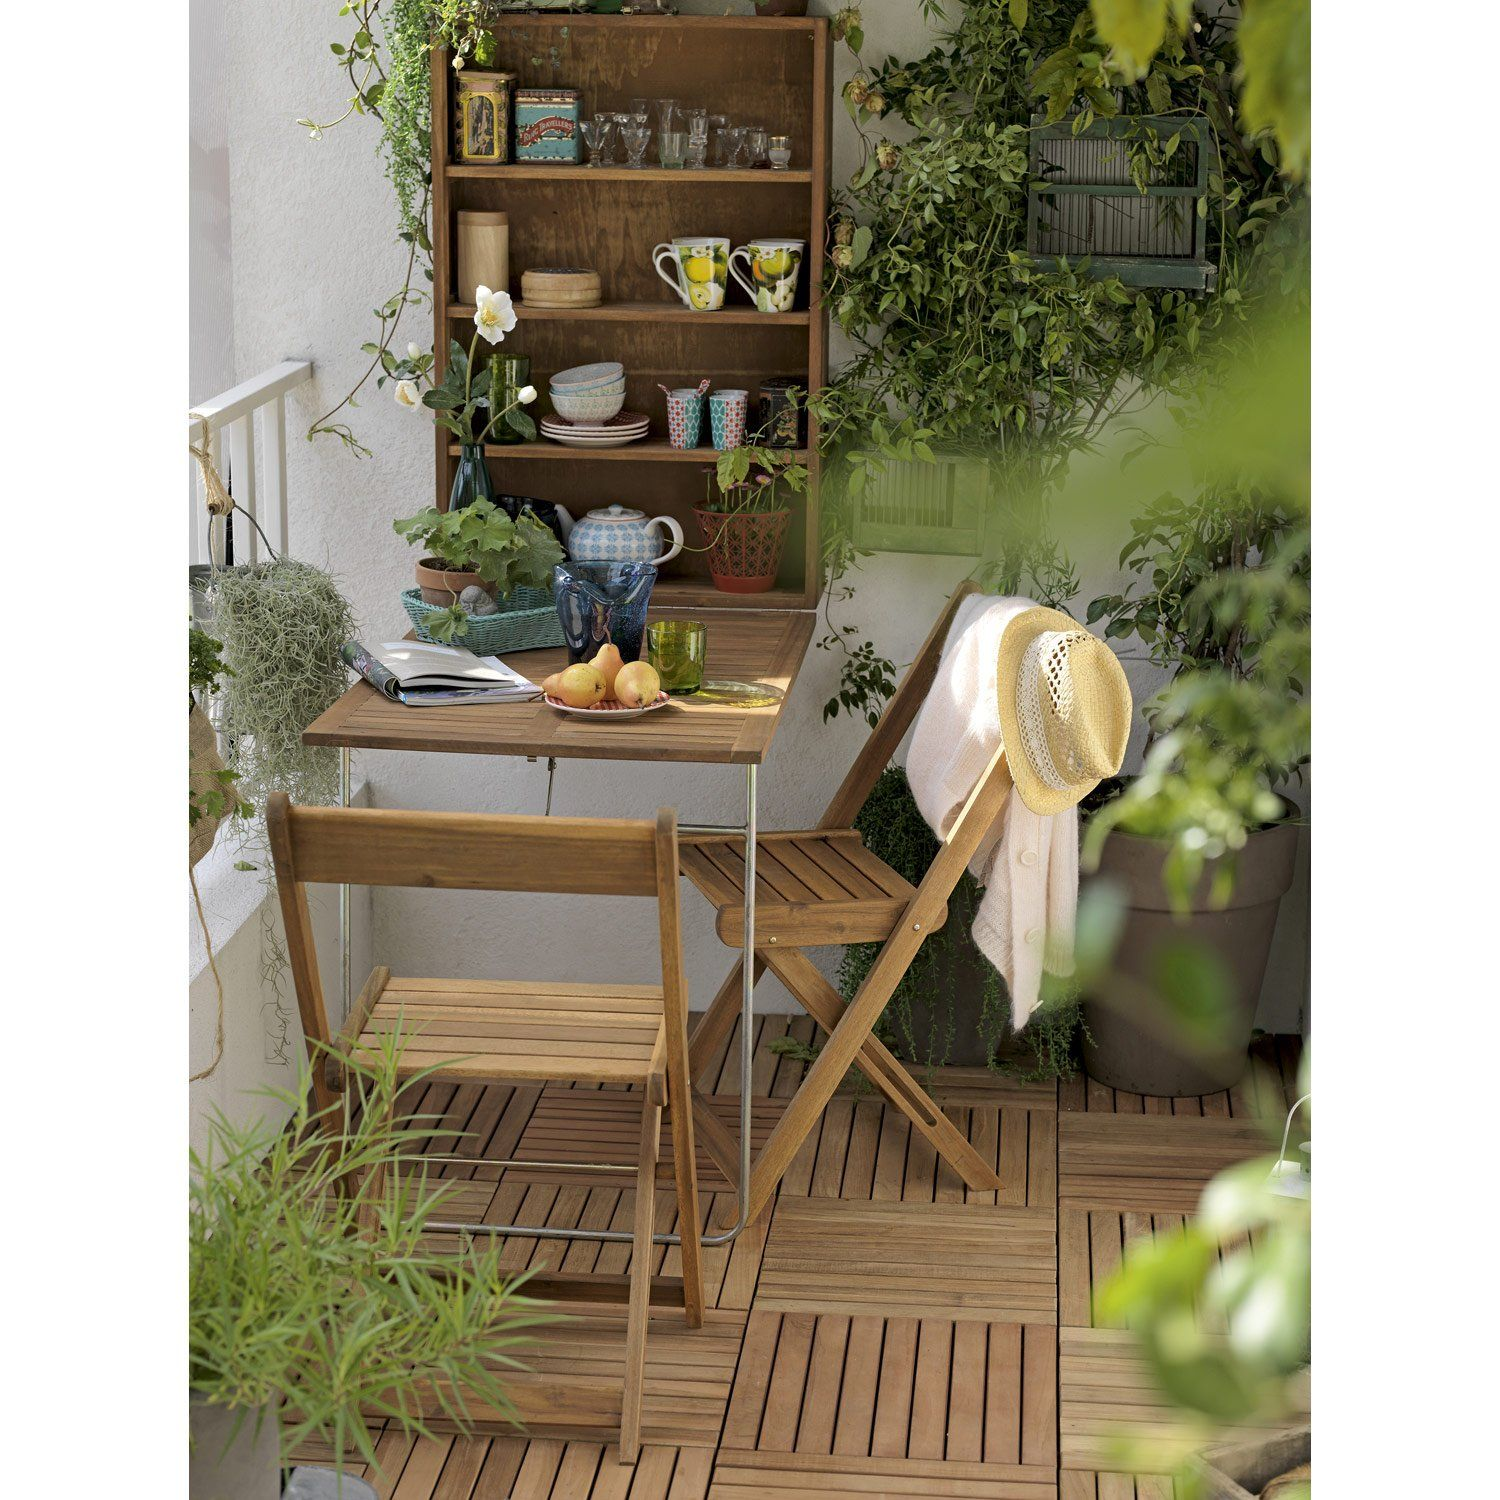 Salon De Jardin Porto Naterial 1 Armoire Murale Table 2 Chaises Leroy Merlin With Images Outdoor Furniture Sets Apartment Balcony Decorating Small Outdoor Spaces